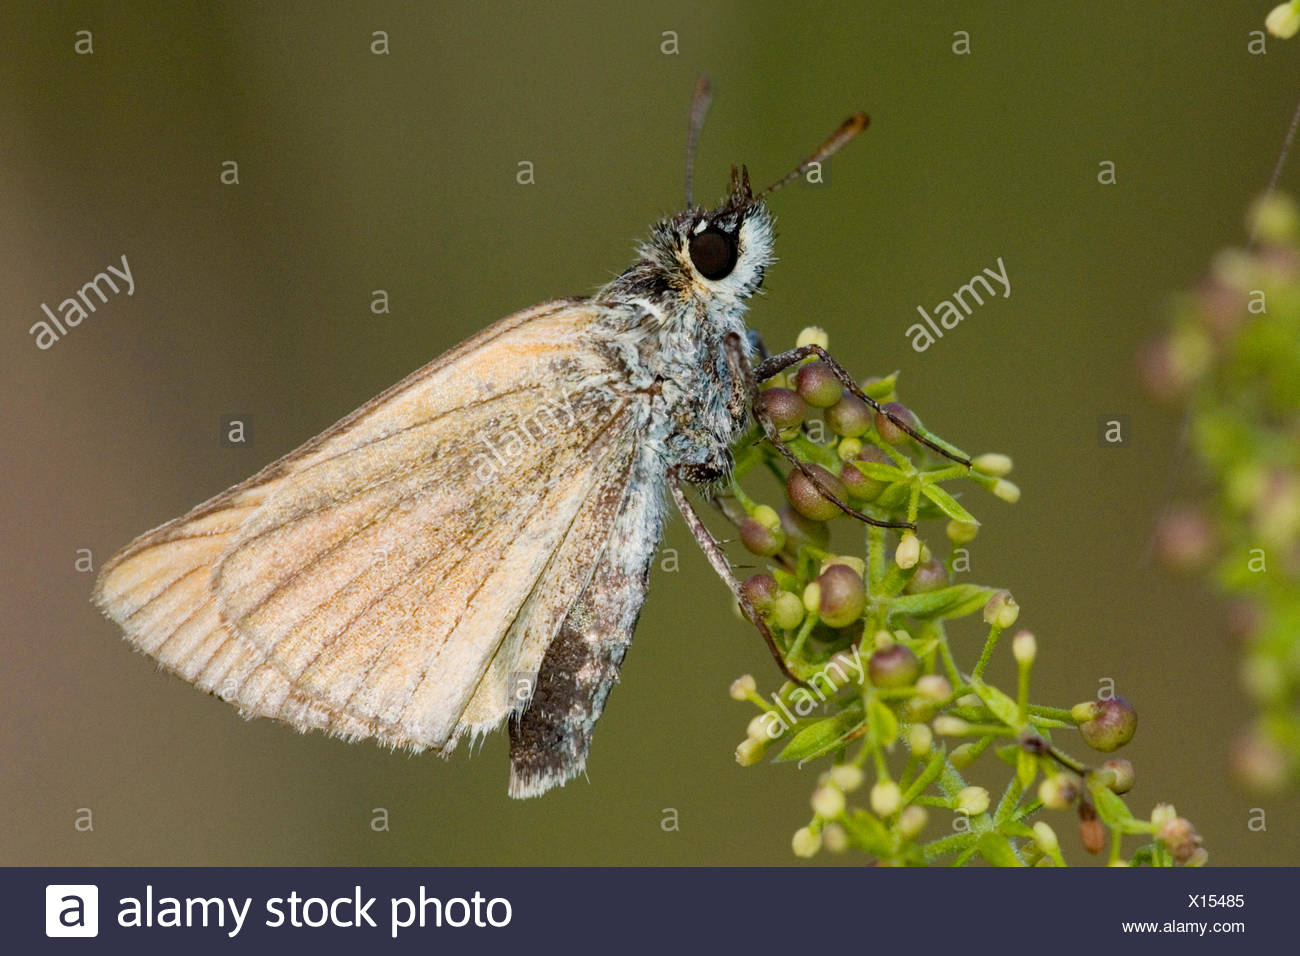 small skipper (Thymelicus sylvestris, Thymelicus flavus), on a stem, Germany - Stock Image